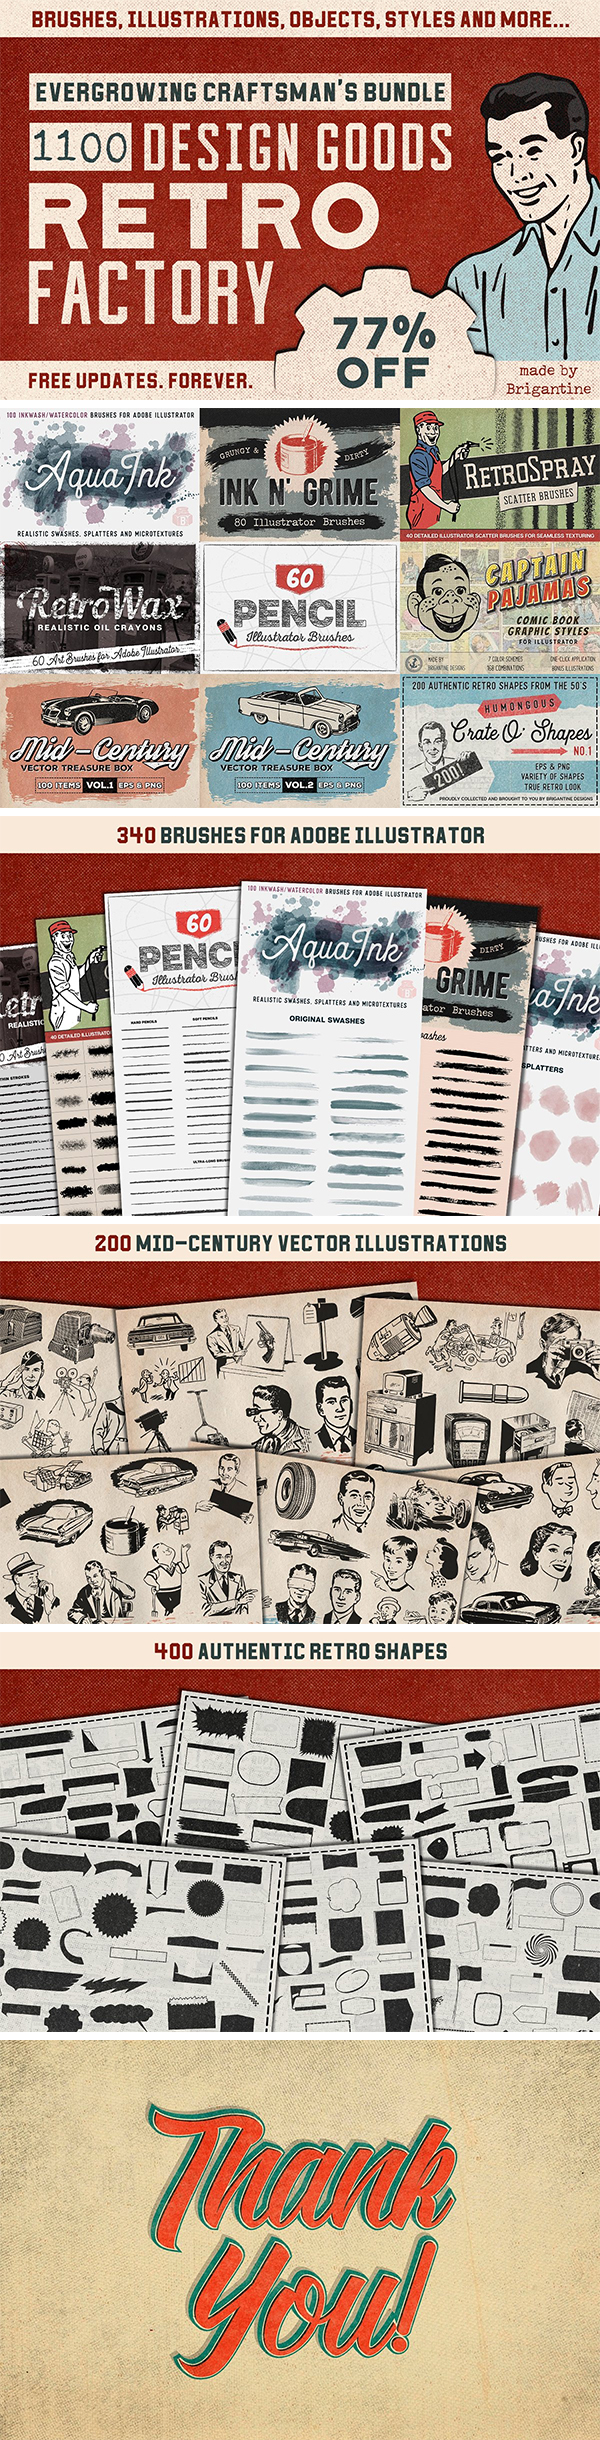 Retro Factory Bundle